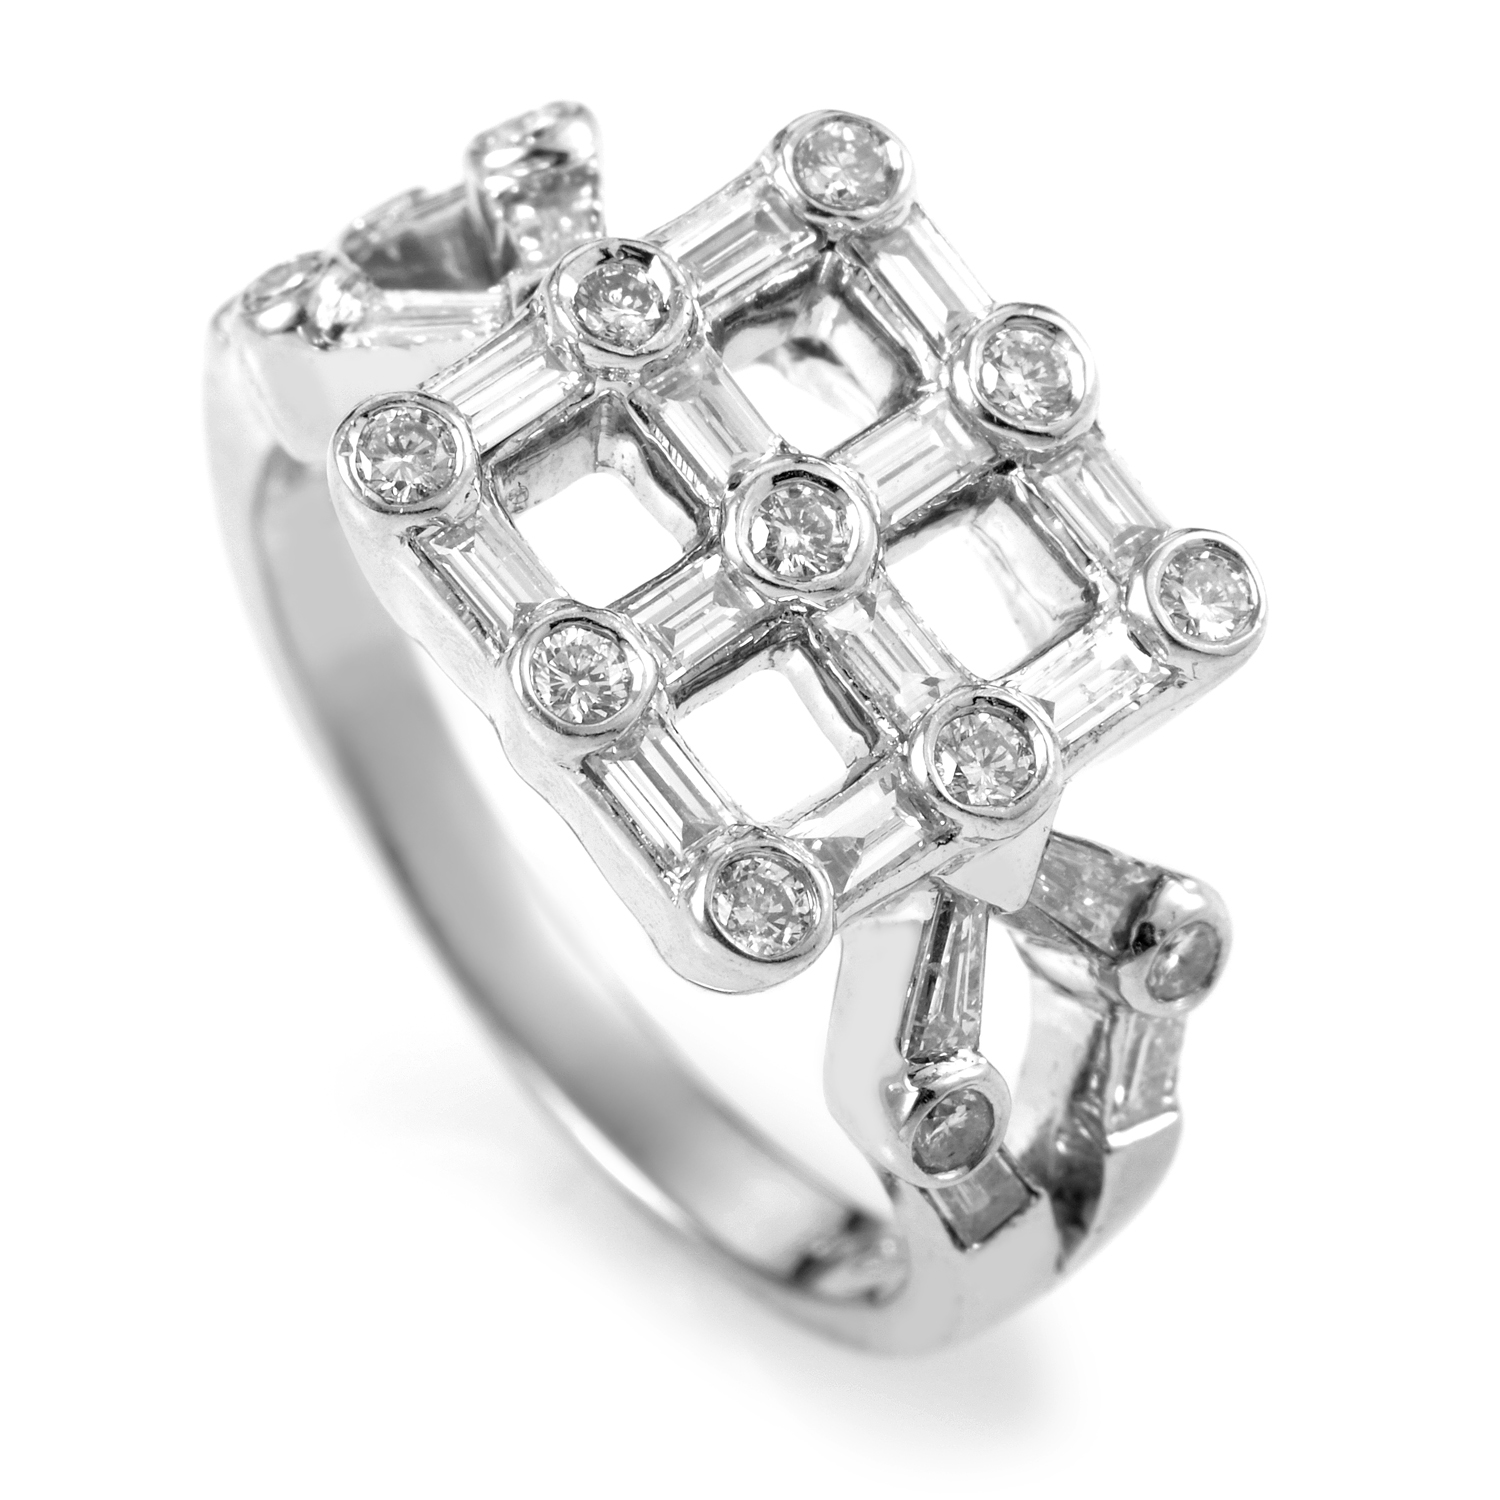 18K White Gold Diamond Grid Ring MFC06-021816